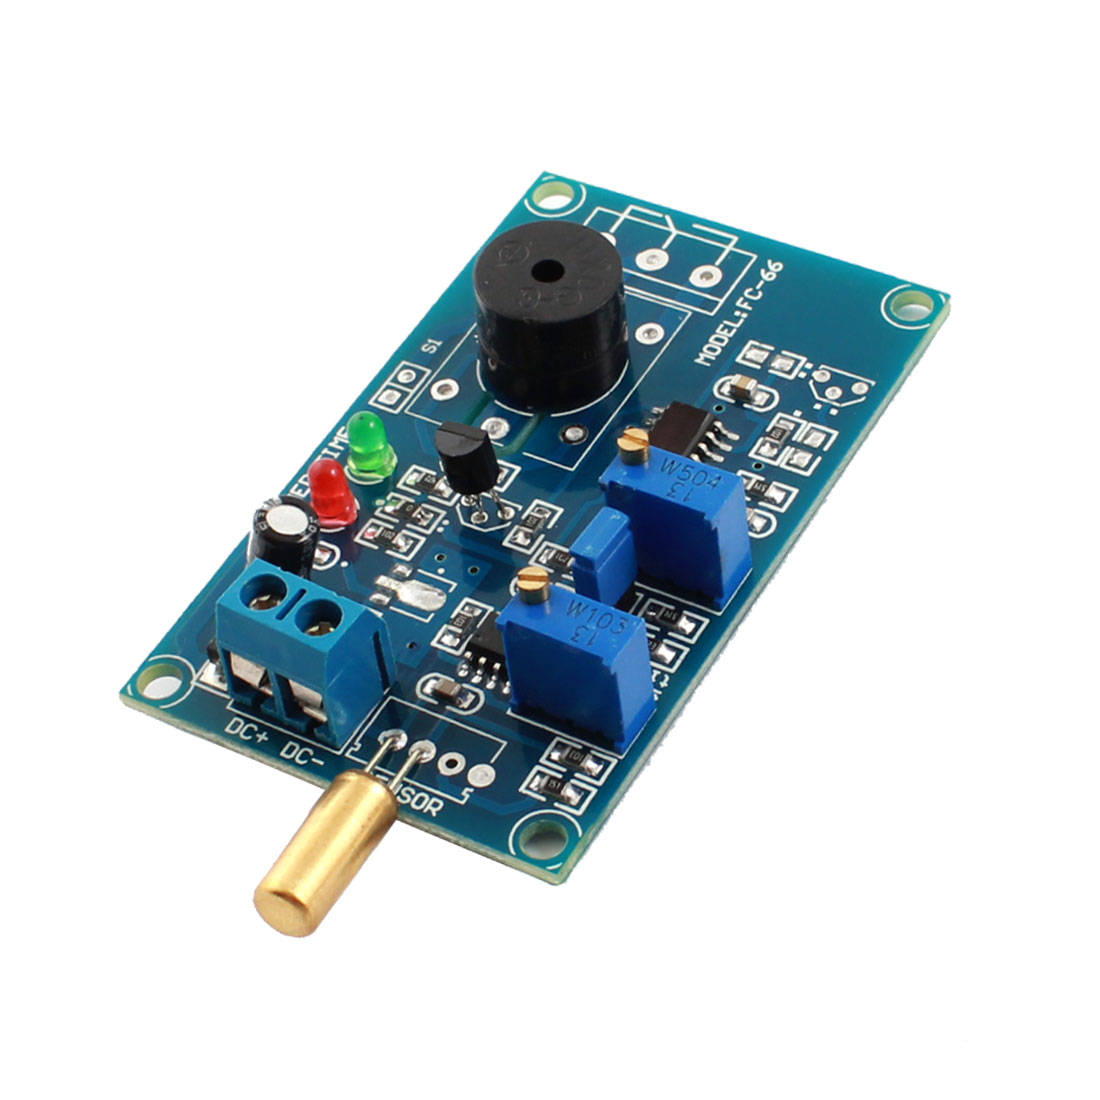 DC5V 0-20s Angular Transducer Dumping Angle Sensor Inclination Time Delay Alarm Buzzer Module